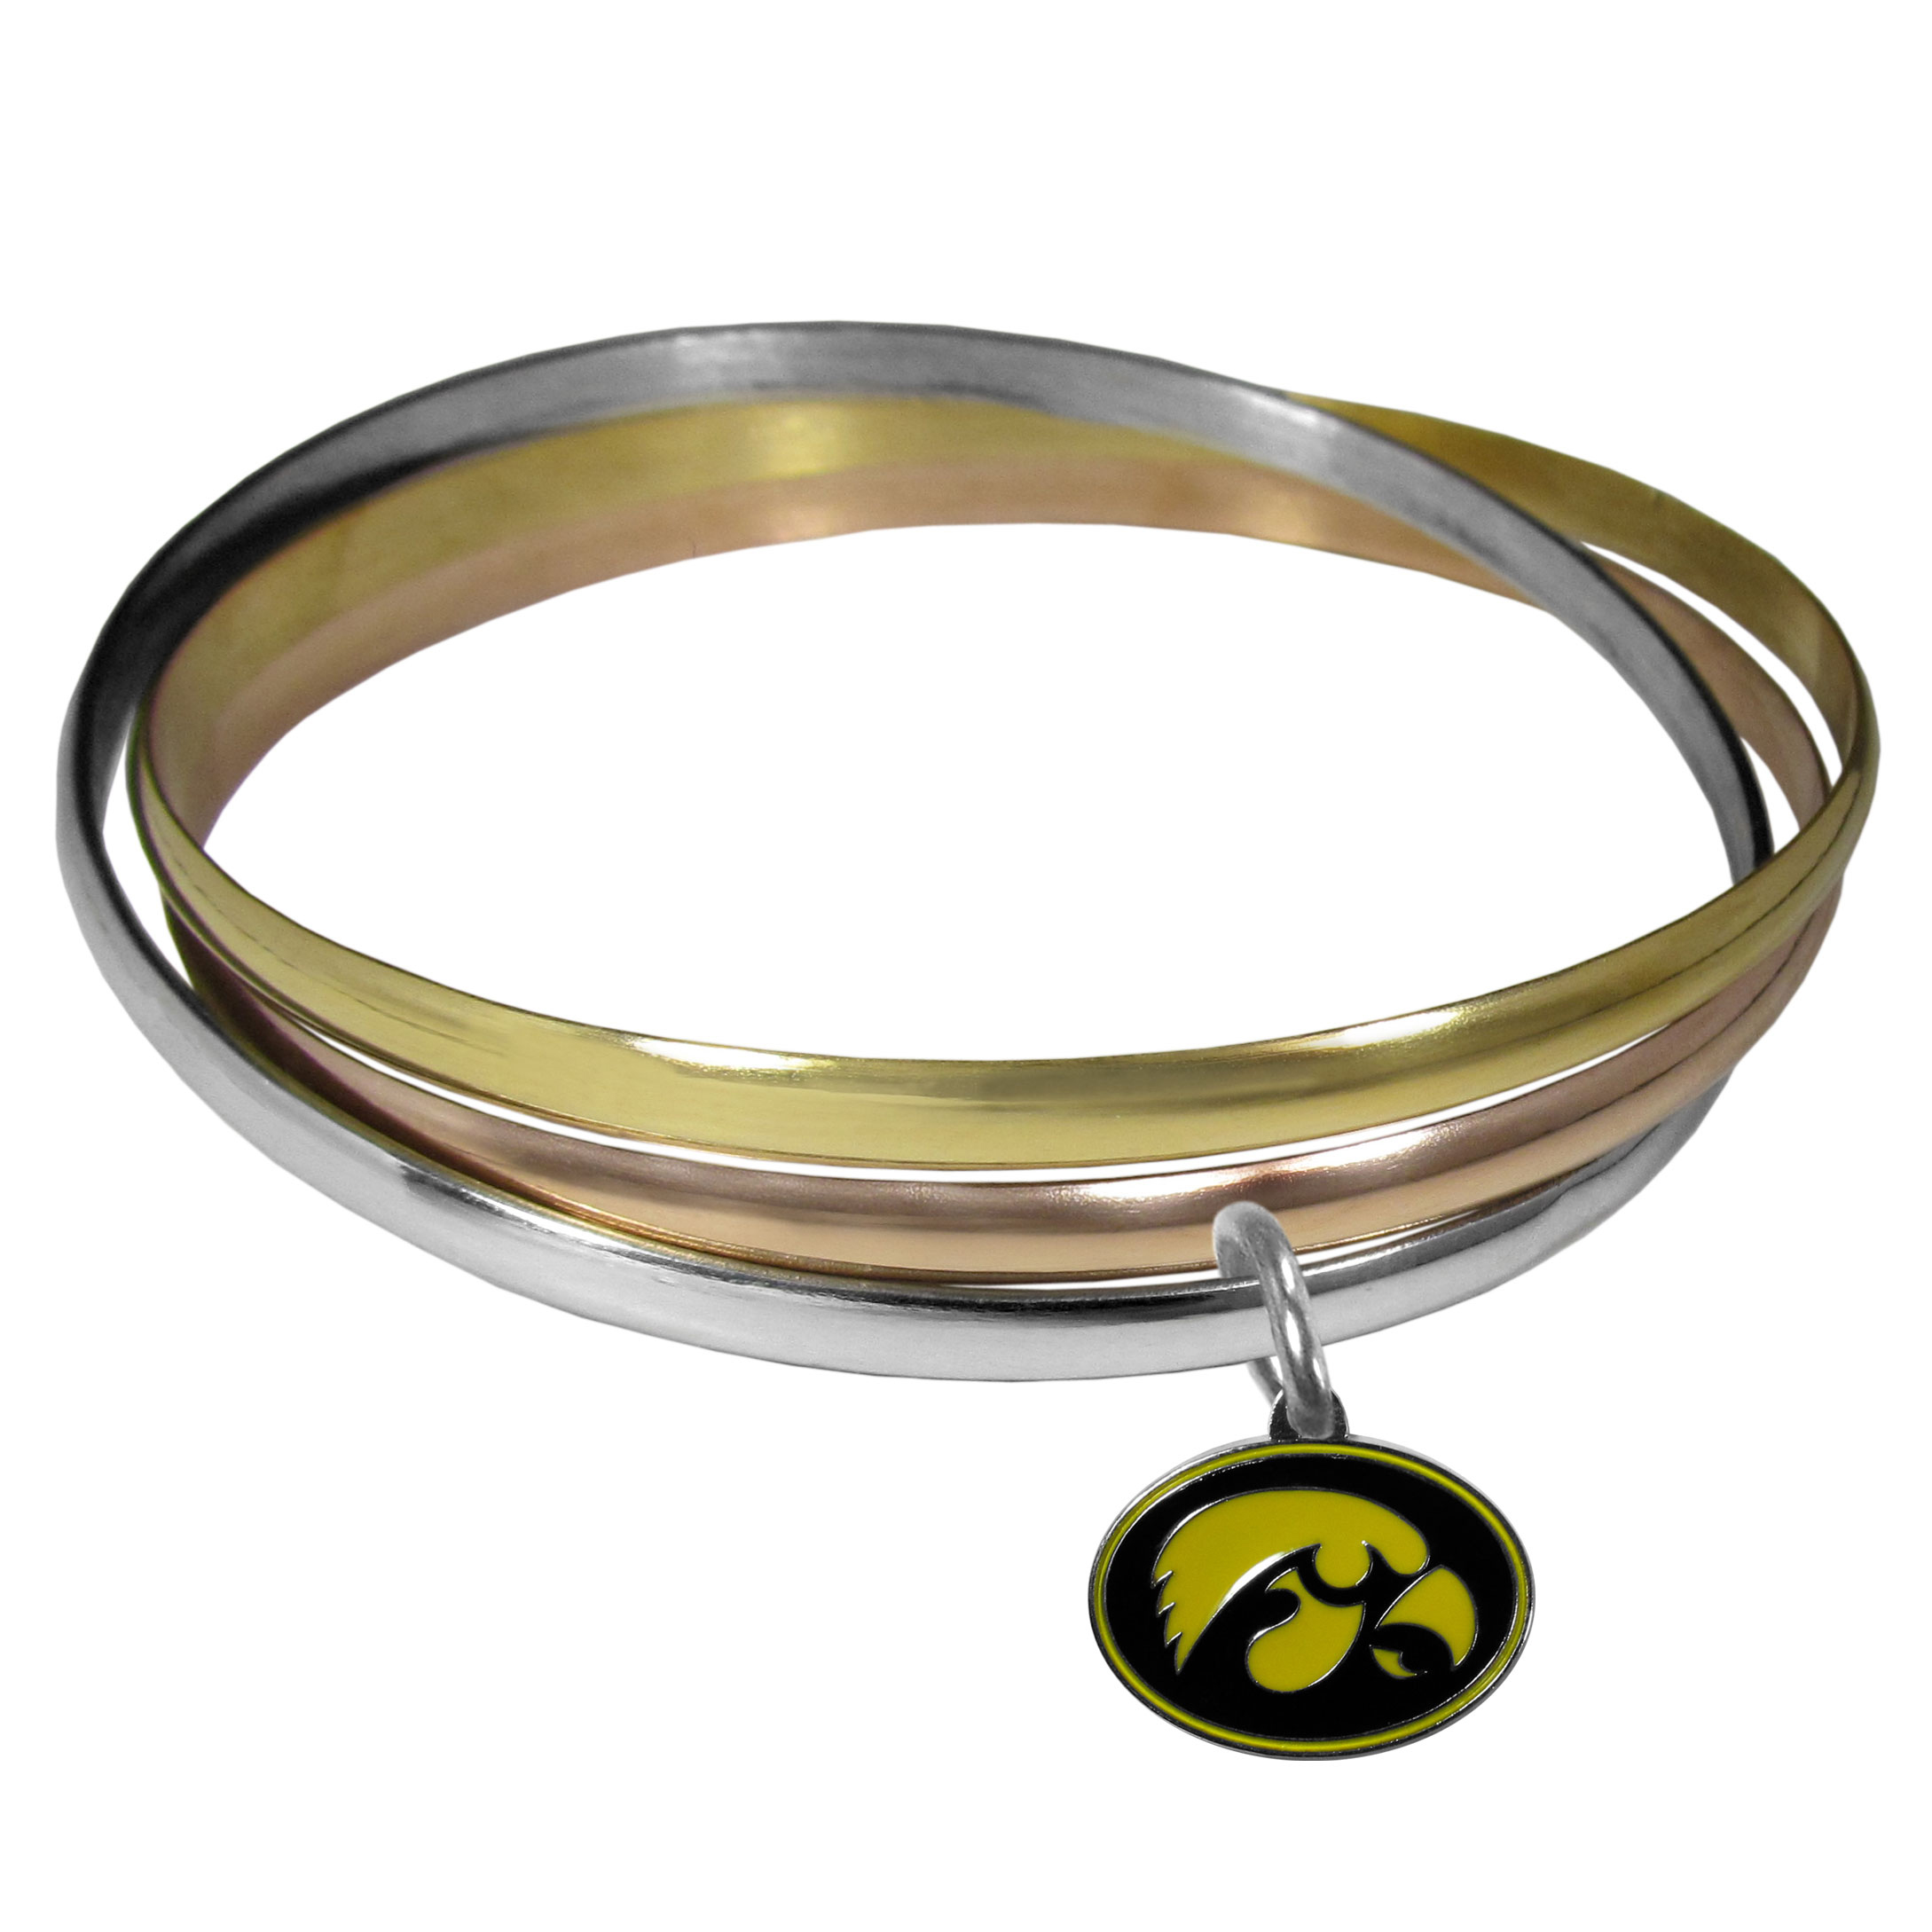 Iowa Hawkeyes Tri-color Bangle Bracelet - These beautiful bangles come in a interlocking style and feature a fully cast Iowa Hawkeyes charm with enameled team colors. The bracelet has a silver toned bangle, gold tone bangle and brass toned bangle.